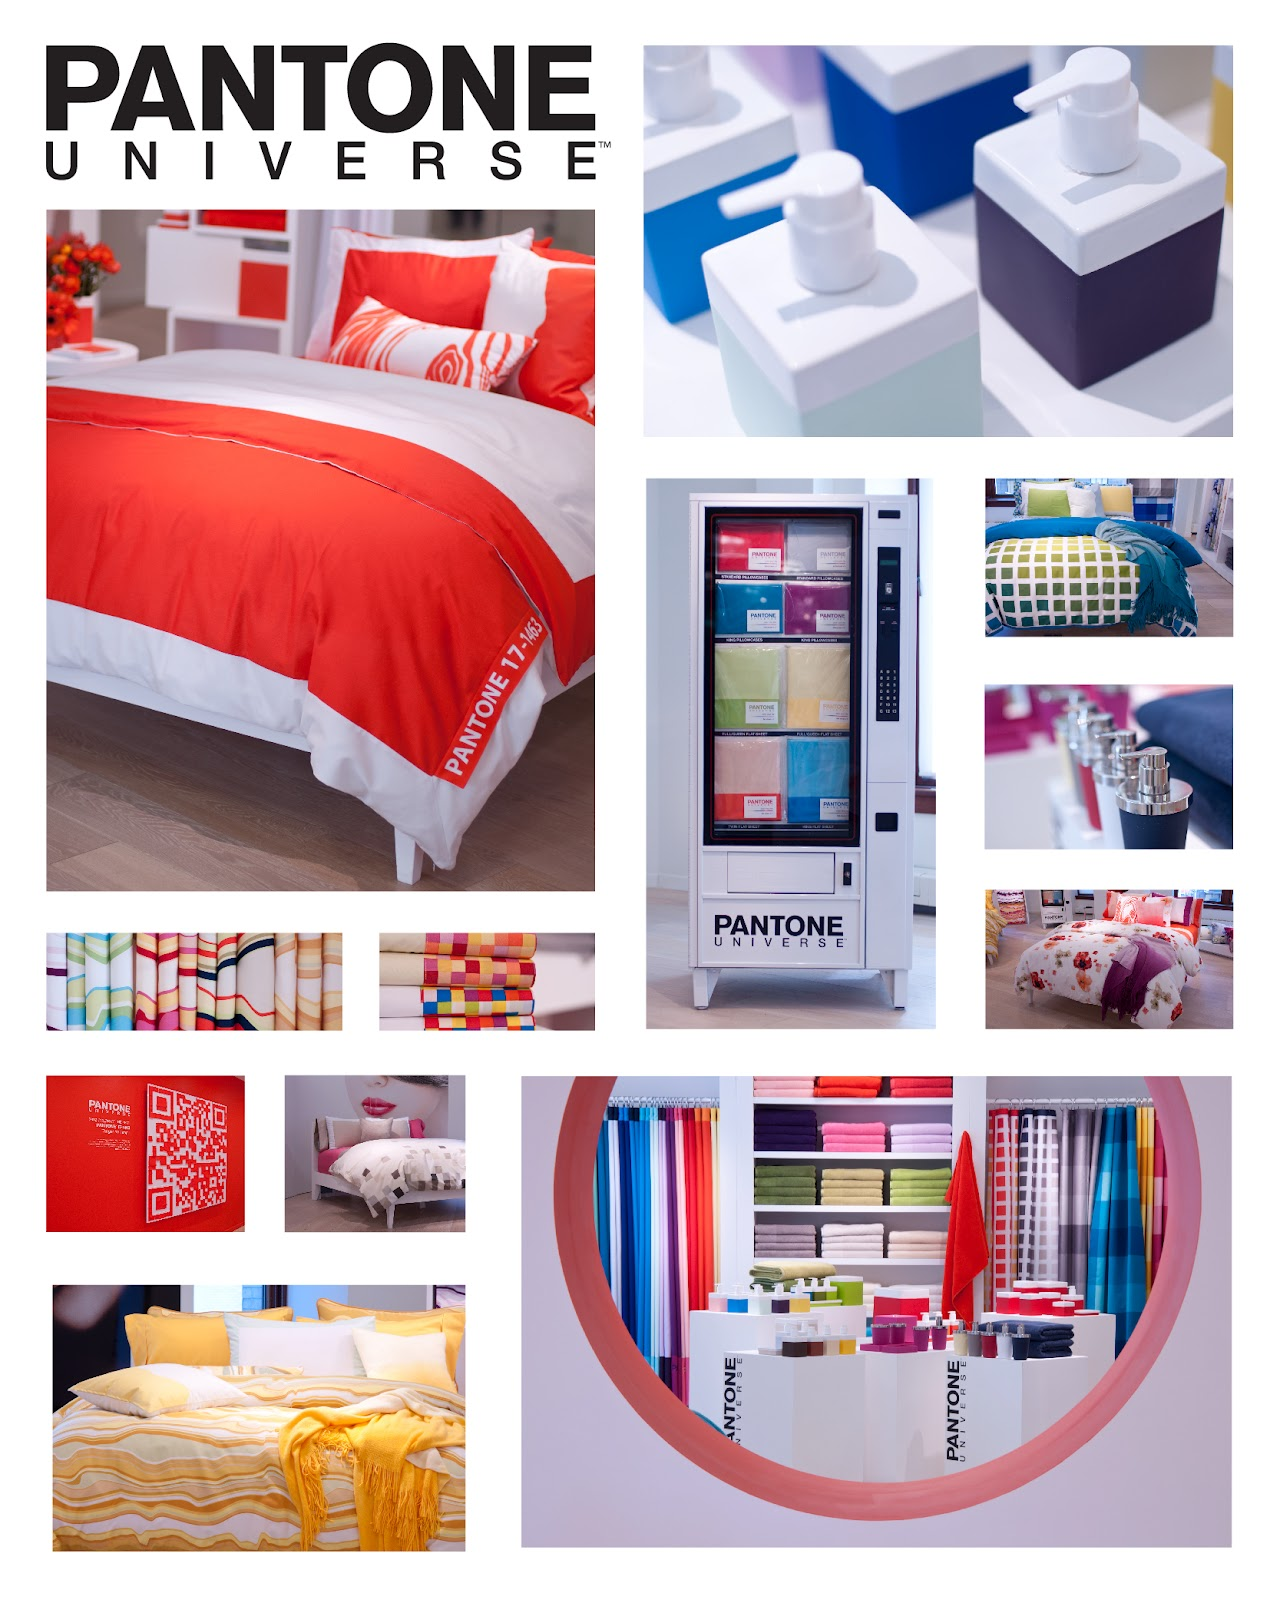 Pantone Is Taking Over The Universe Design Confidential